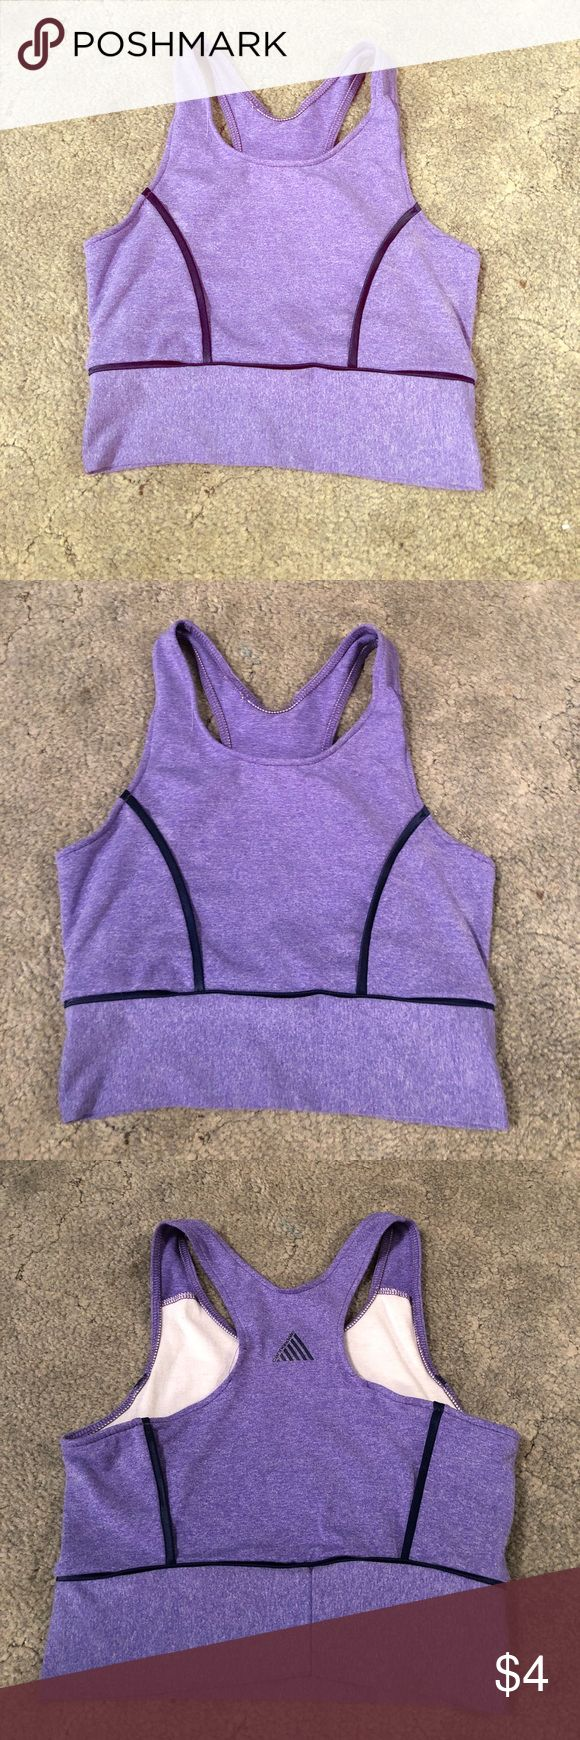 Purple Sports Bra! A purple sports bra! Good condition! Coming from a smoke free home! Same or next day shipping! Bundle for extra savings! Cannondale Intimates & Sleepwear Bras